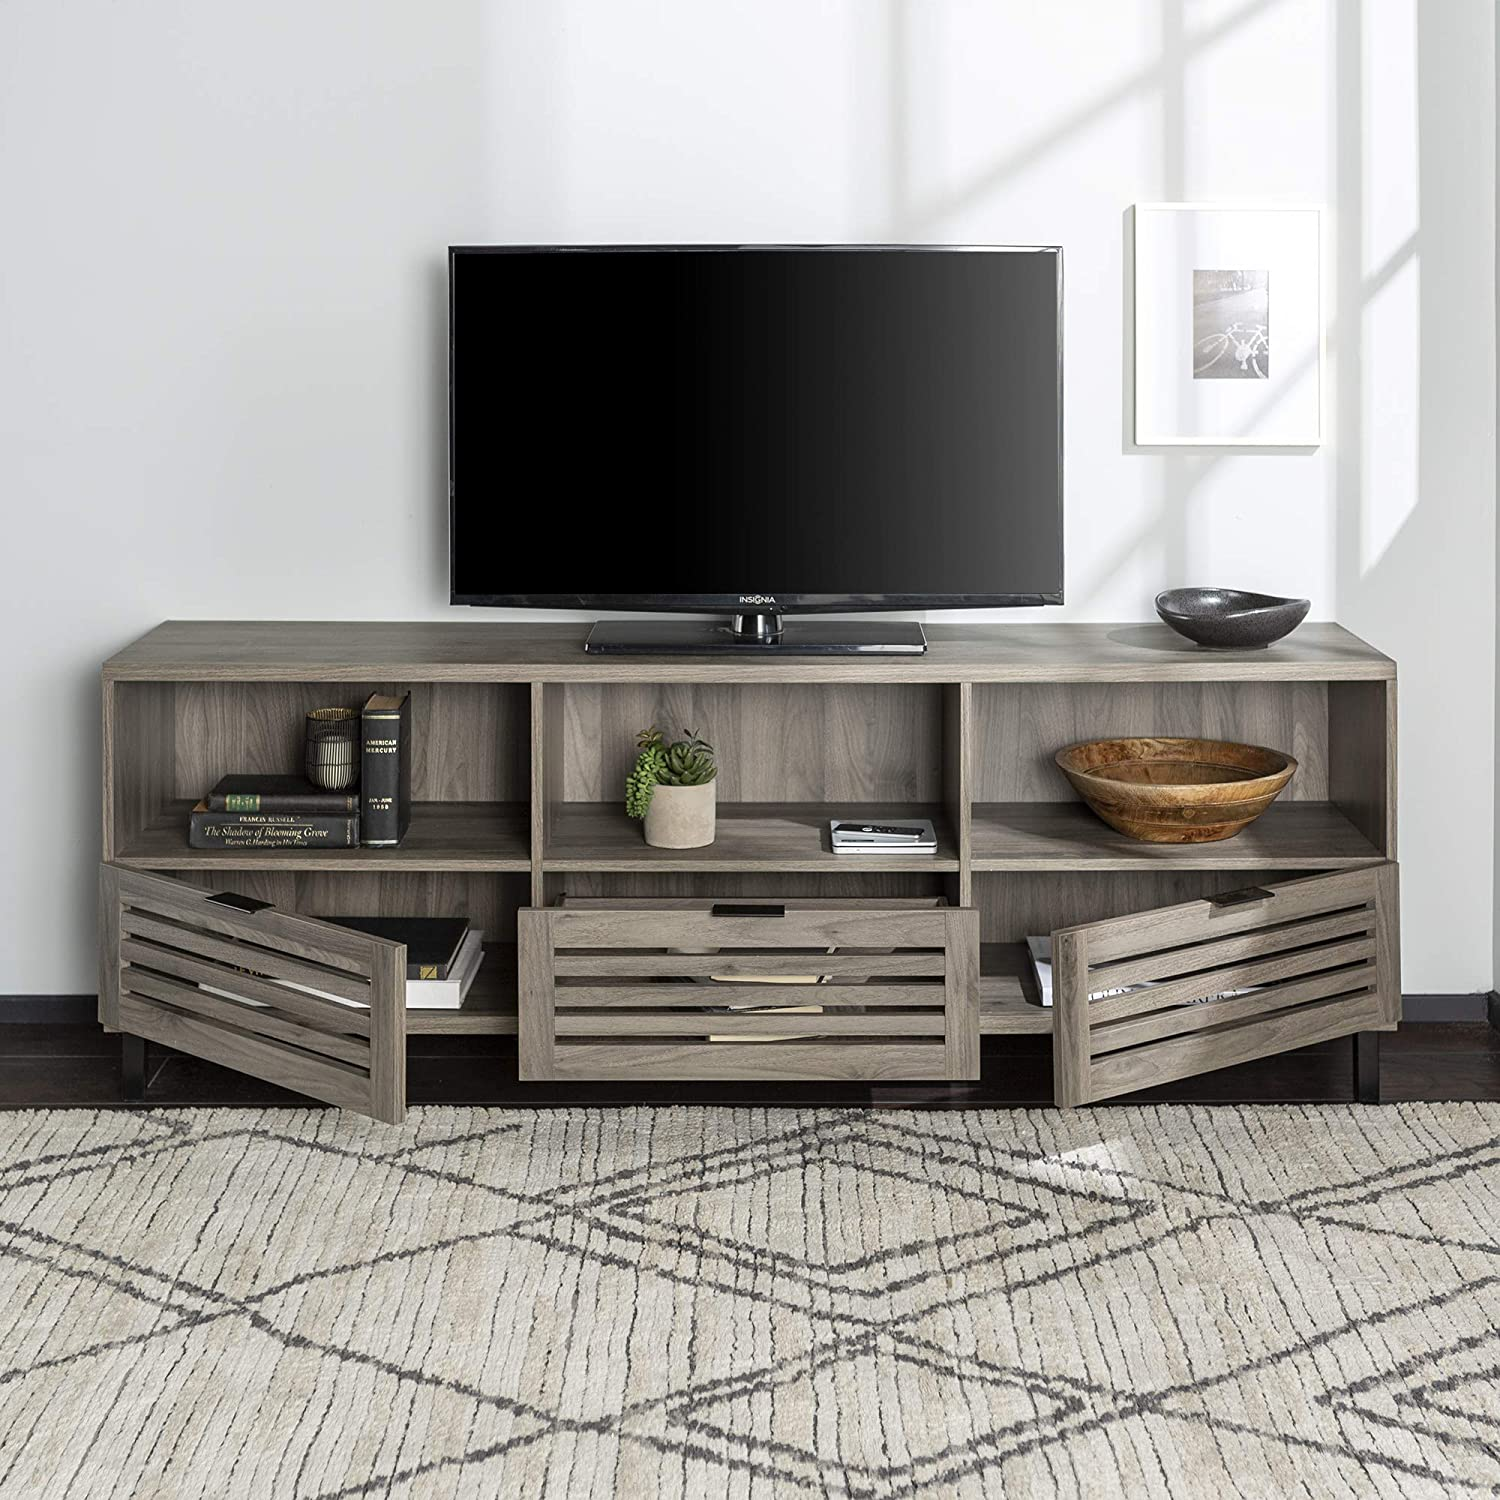 Walker Edison Modern Slatted Wood 80 Universal Tv Stand For Flat Screen Living Room Storage Cabinets And Shelves Entertainment Center Slate Grey Furniture Decor